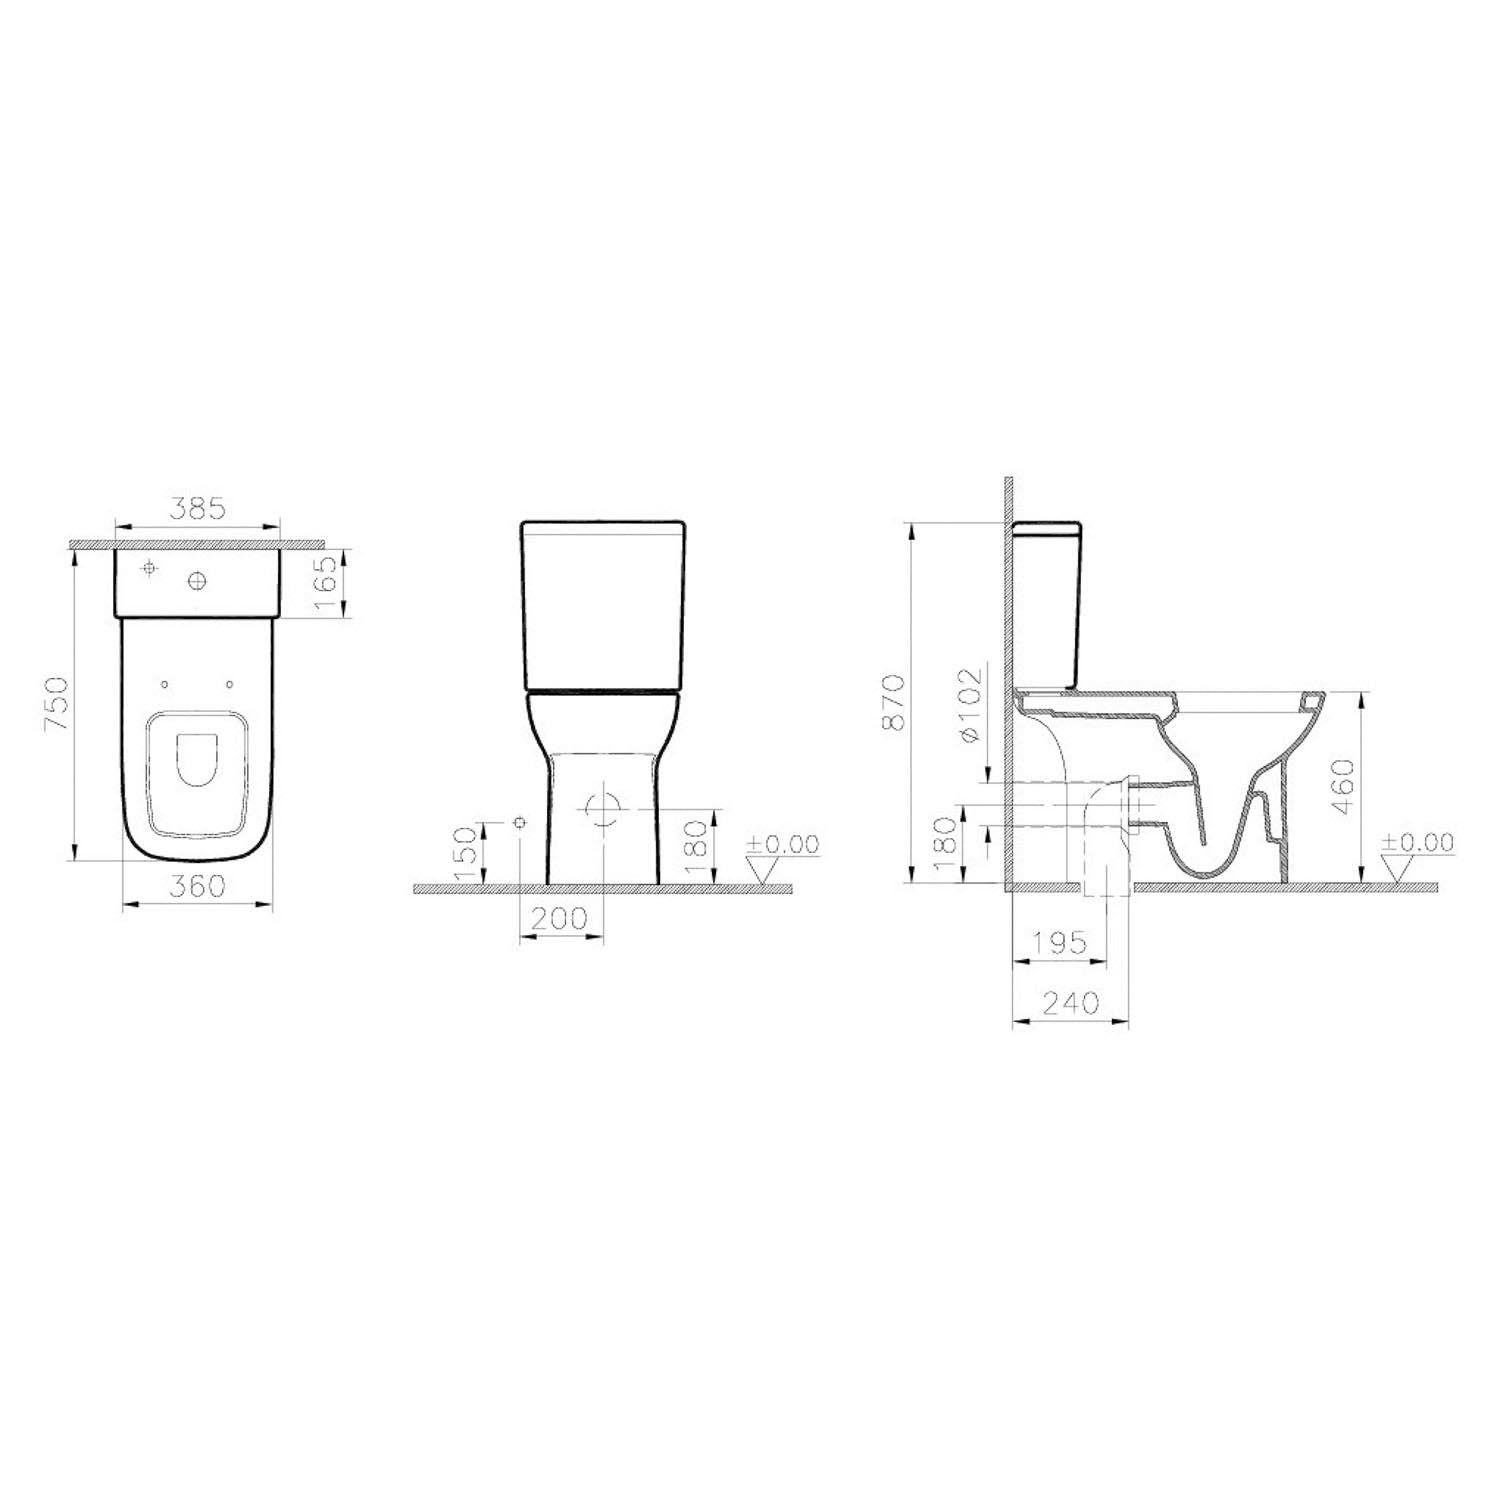 Consilio Comfort Height Close Coupled Toilet with the seat and cover dimensional drawing